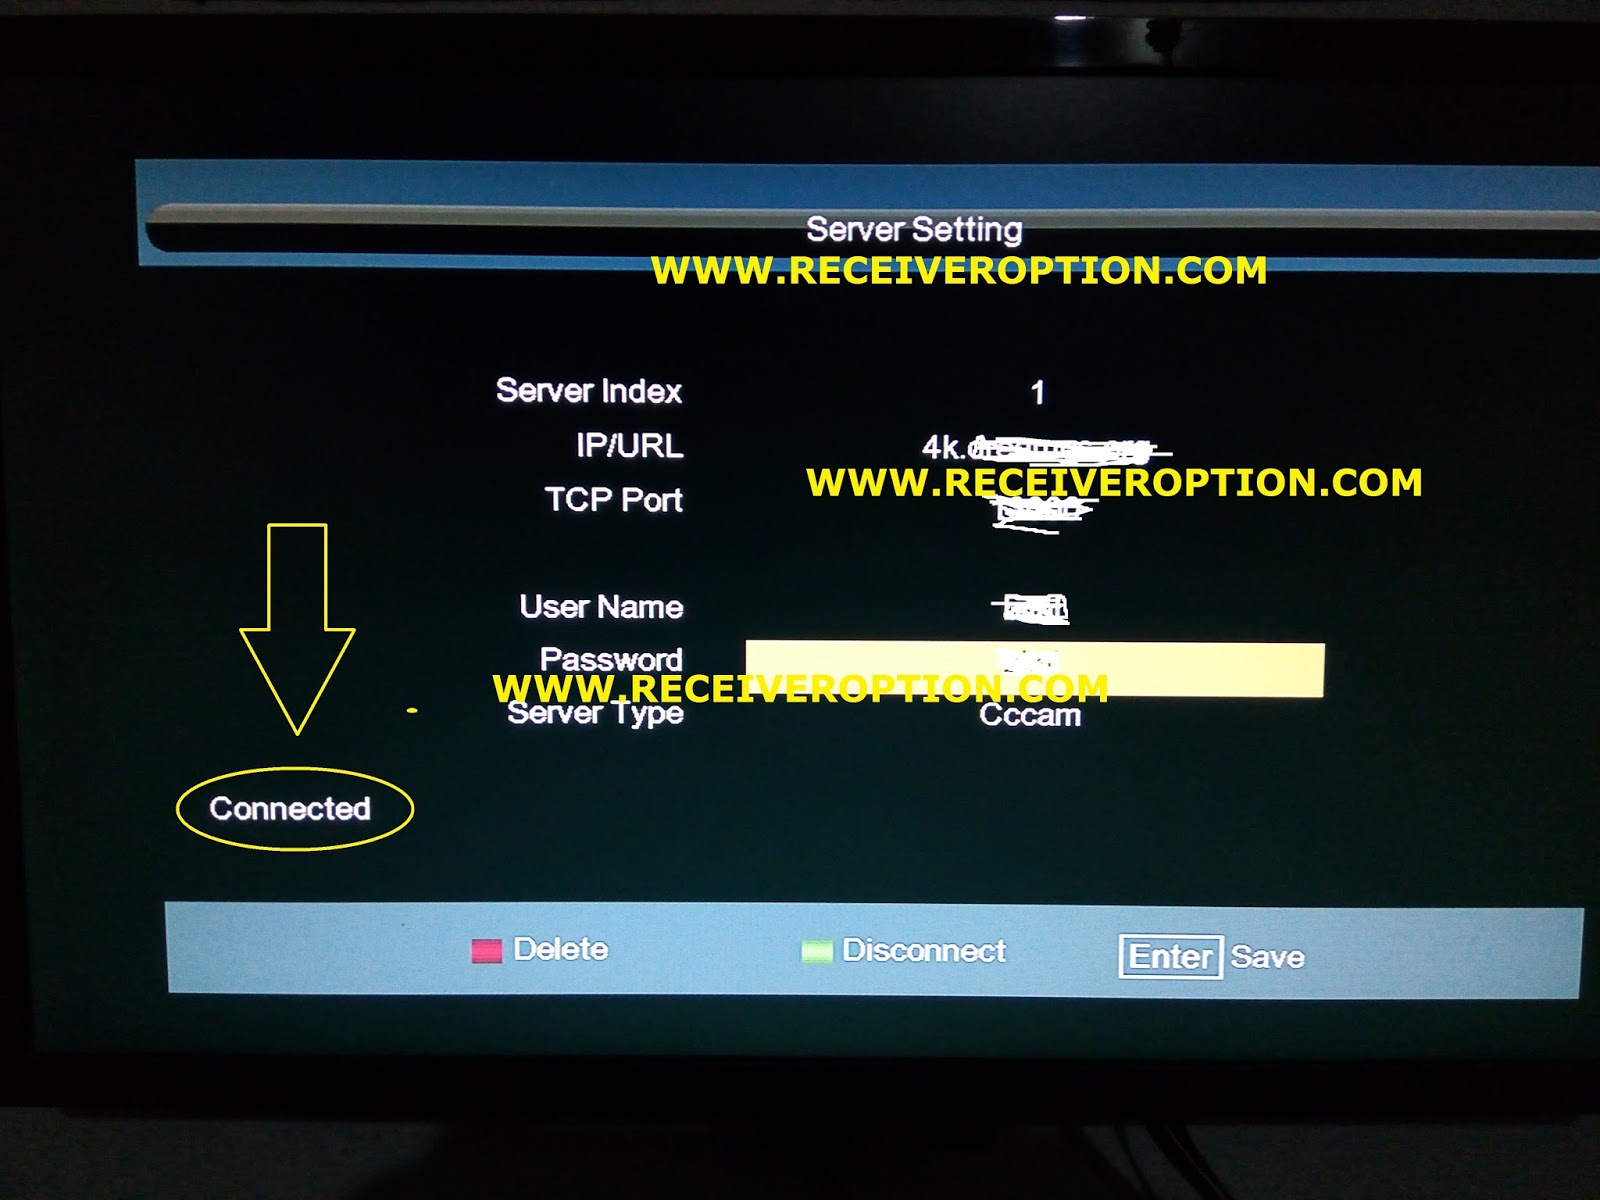 NEWSAT 9990 PLUS HD RECEIVER CCCAM OPTION - HOW TO ENTER BISS KEY